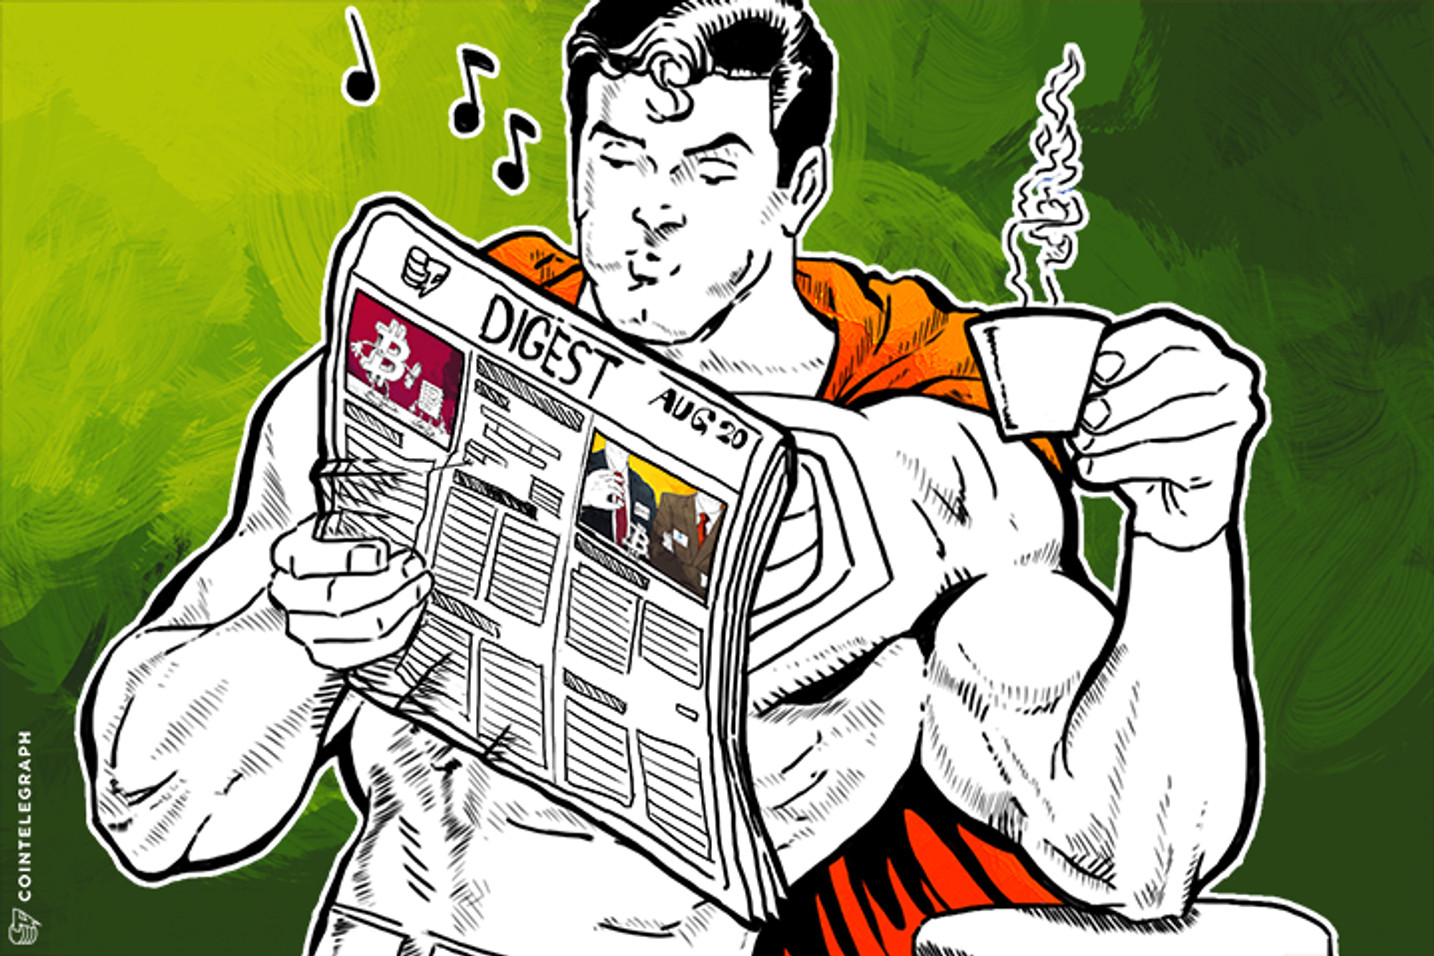 AUG 20 DIGEST: Bank of England Says Digital Currency is 'Harder Money' than Gold; Nigeria's Bank Calls for Bitcoin Regulation